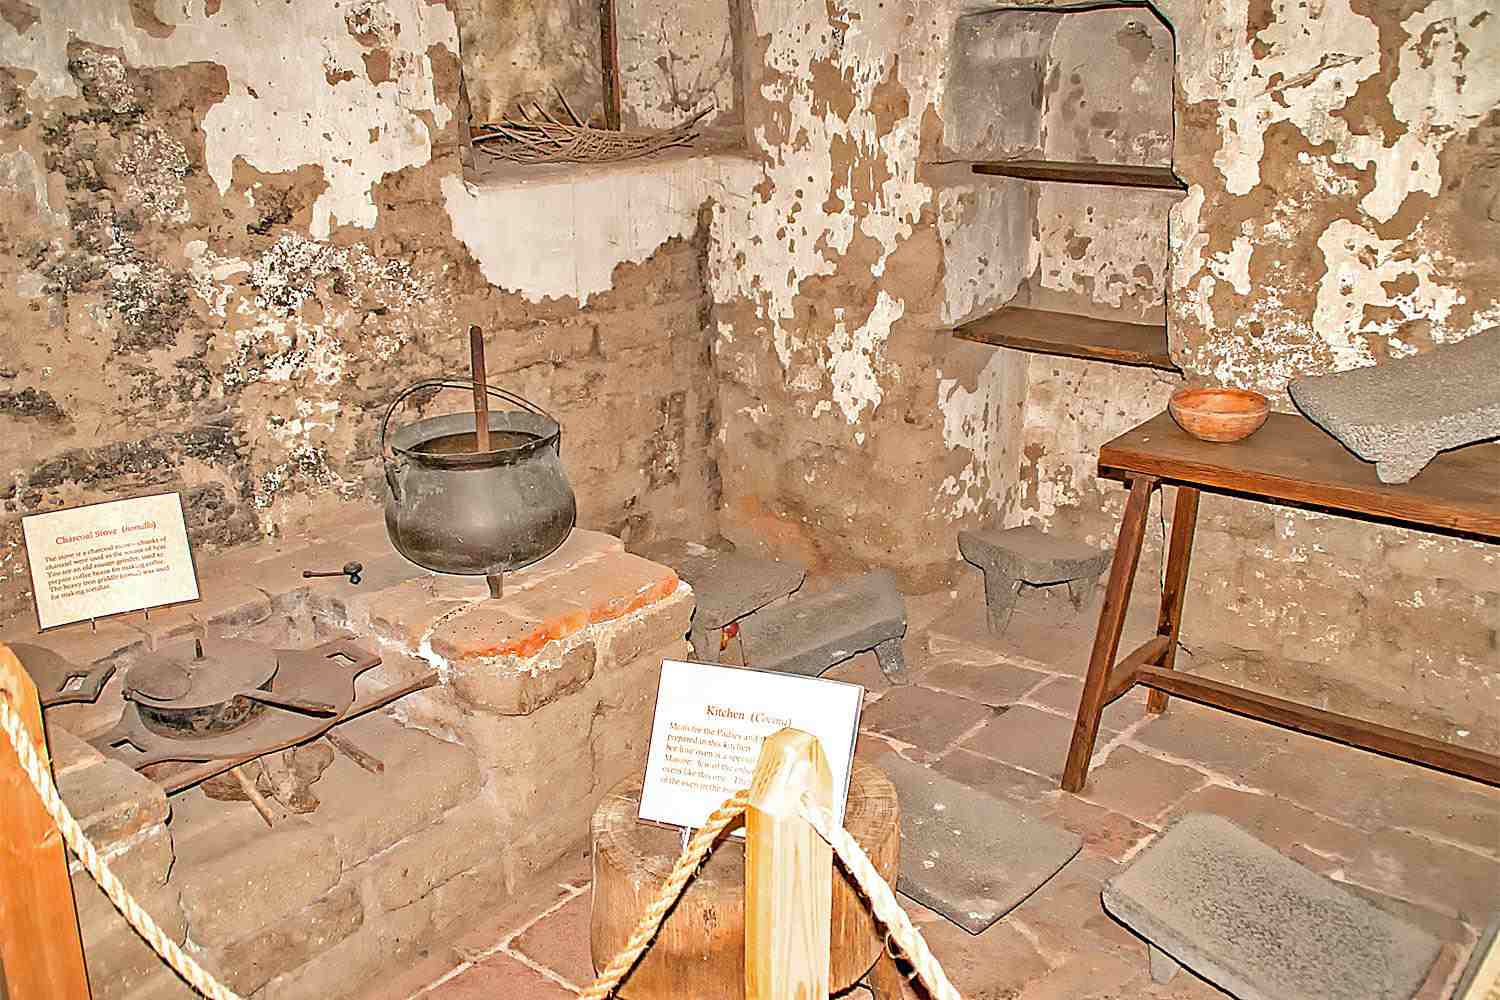 Kitchen at Mission San Miguel